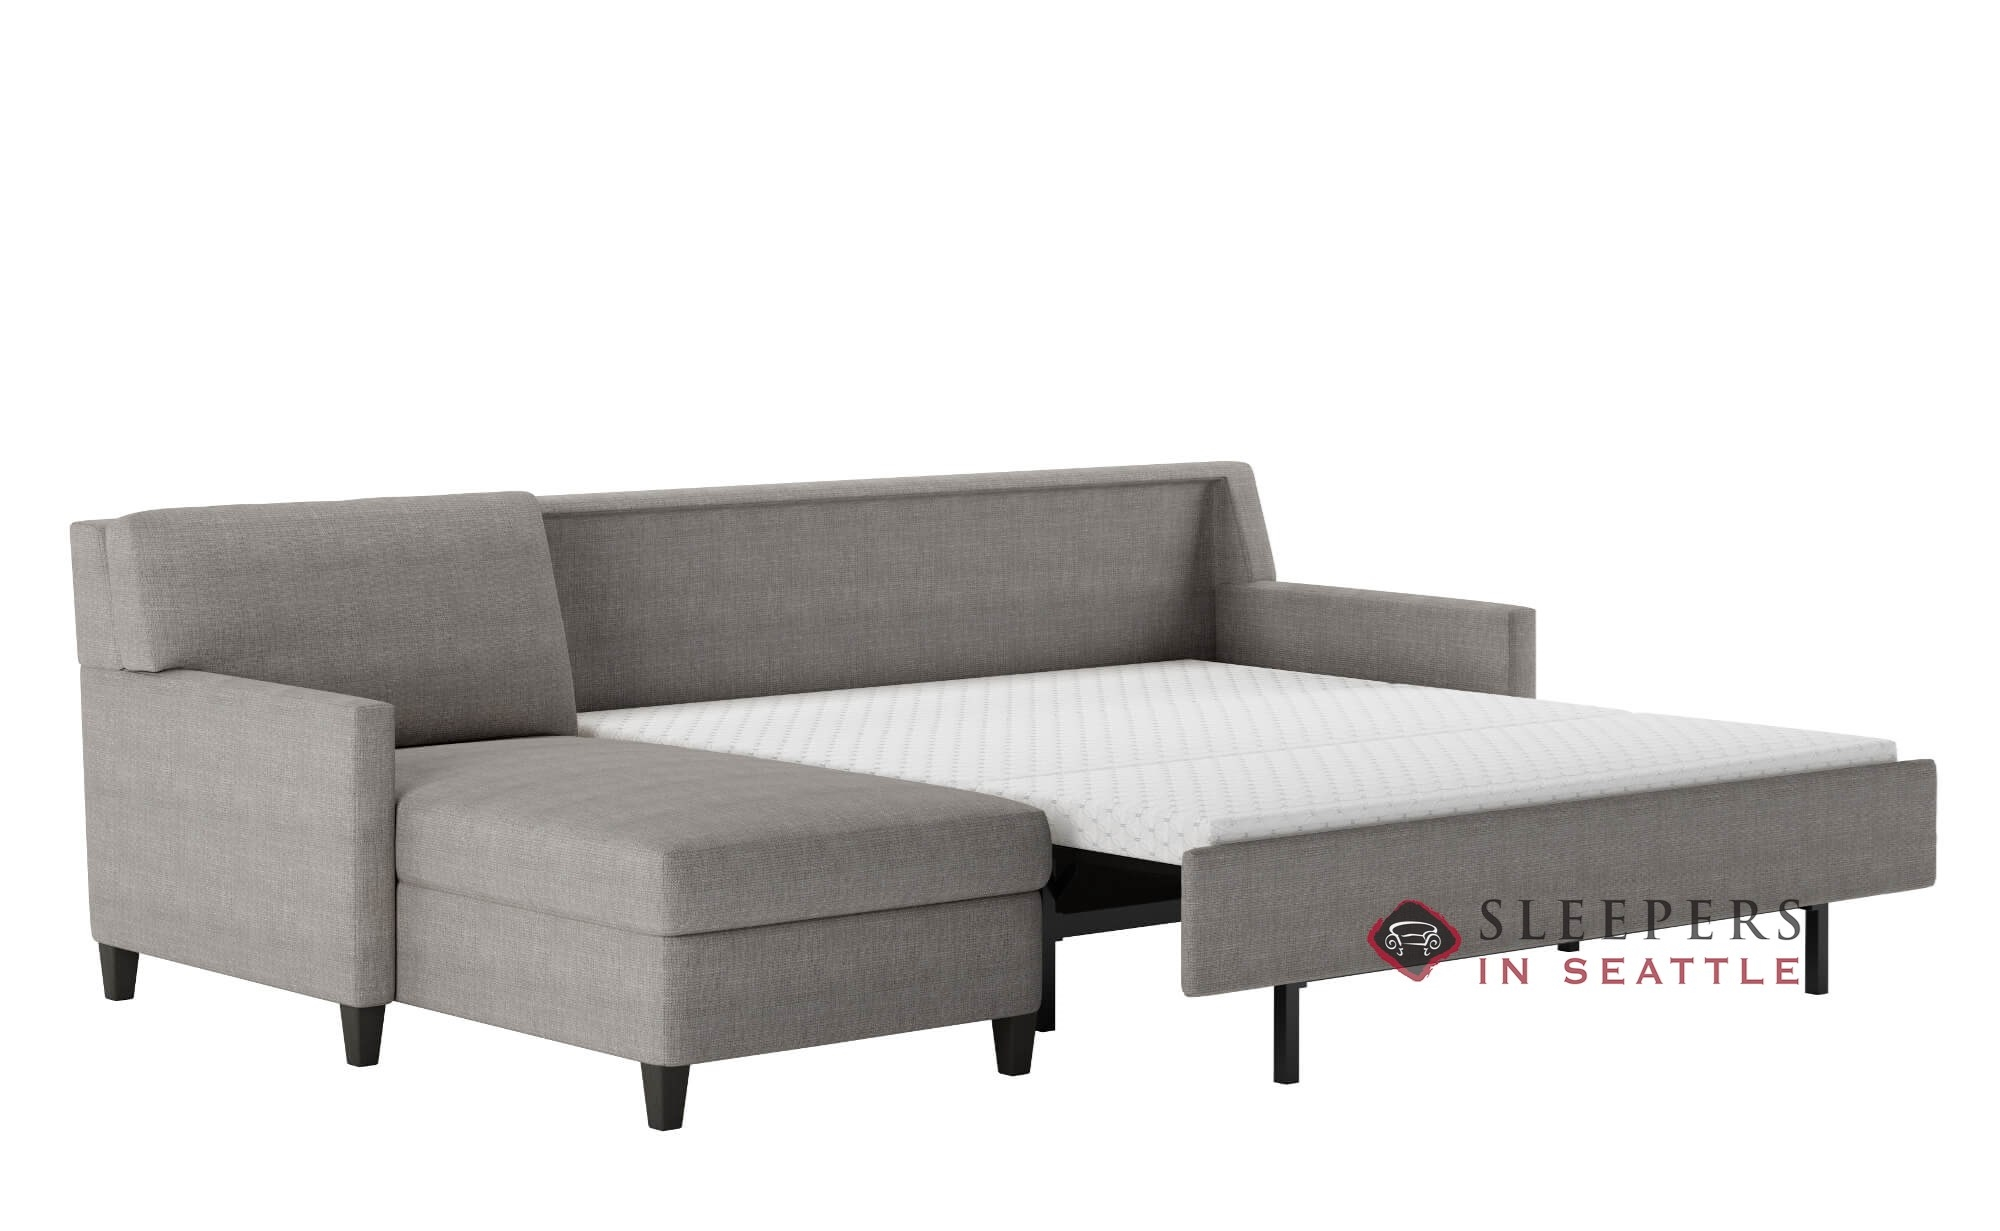 bed sectional small furniture full comfort size couch sofas of prices set chairs white tempurpedic sleeper sofa comforter american leather the